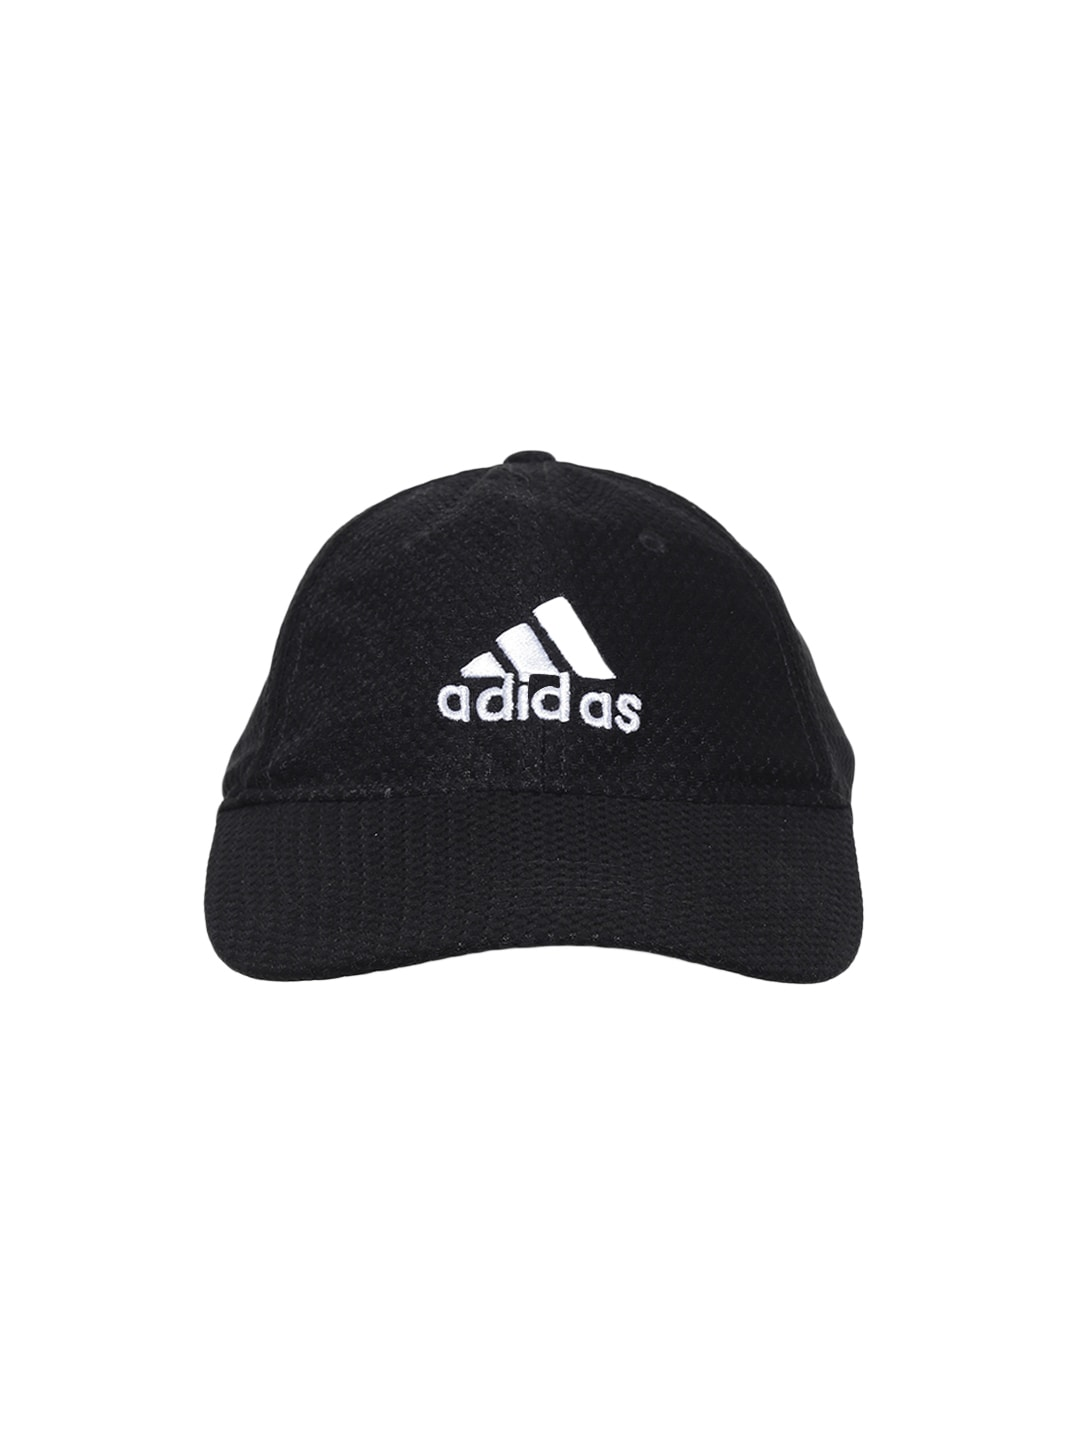 556d55ca978 Adidas Polyester Caps - Buy Adidas Polyester Caps online in India